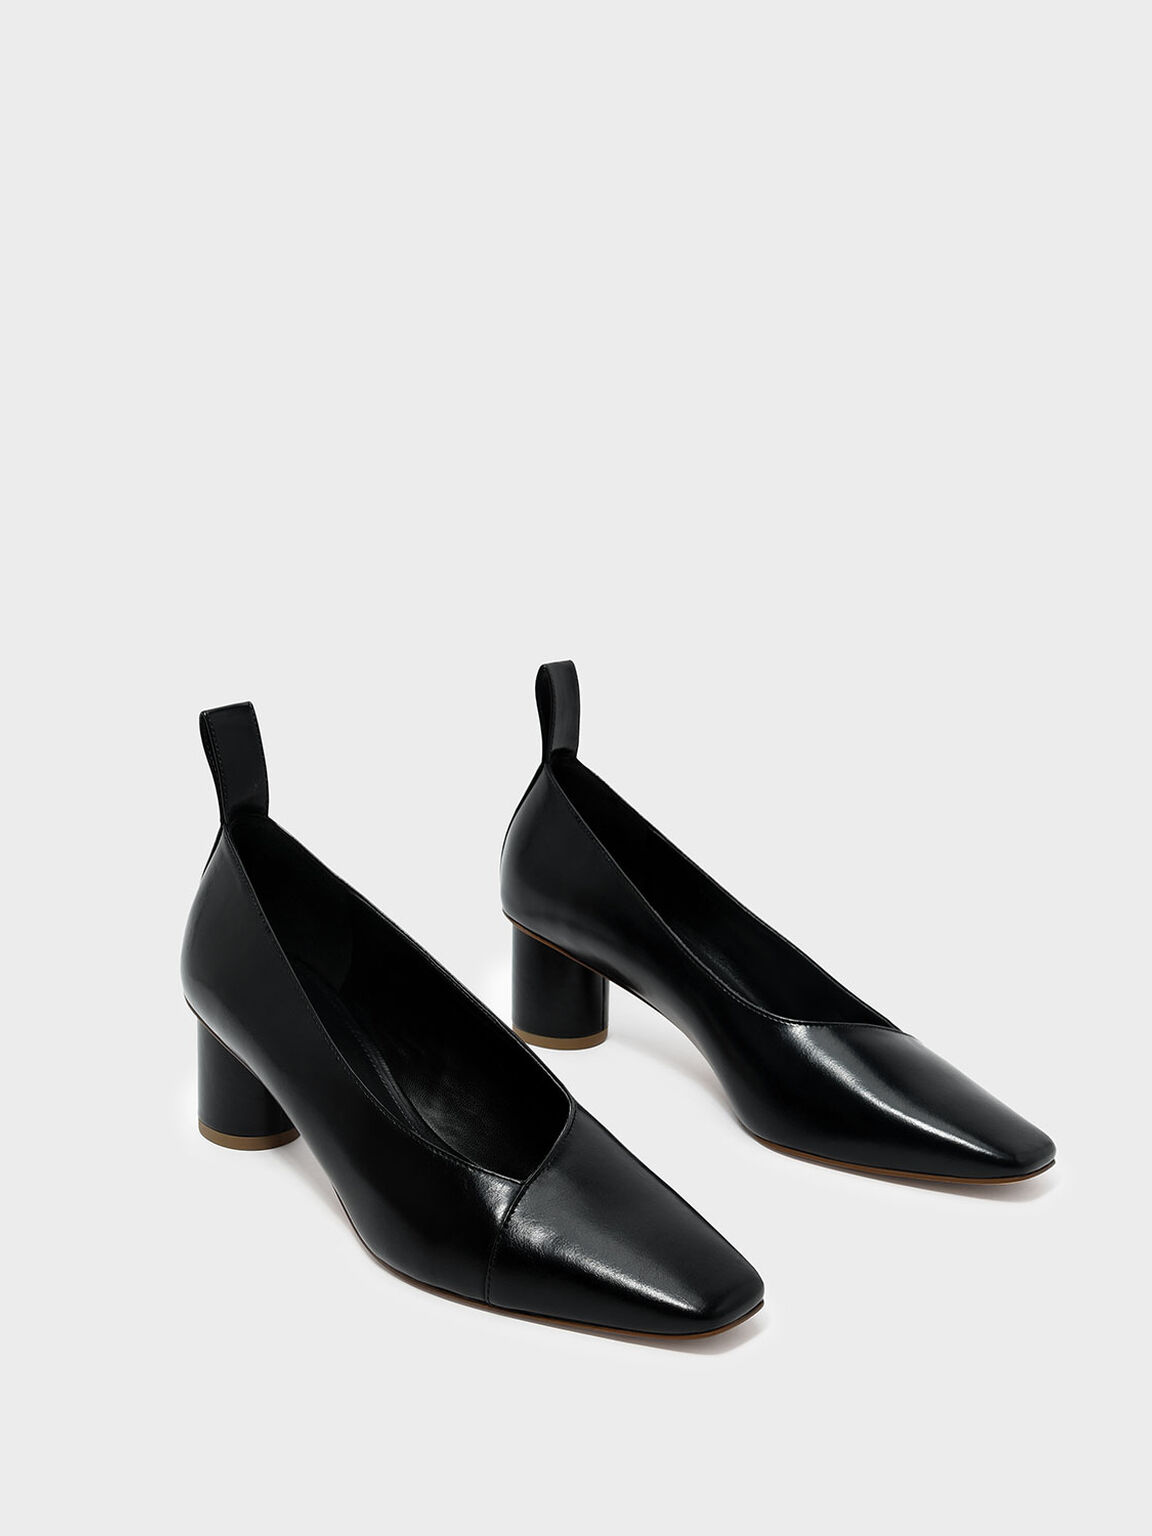 Asymmetrical Topline Pumps, Black, hi-res